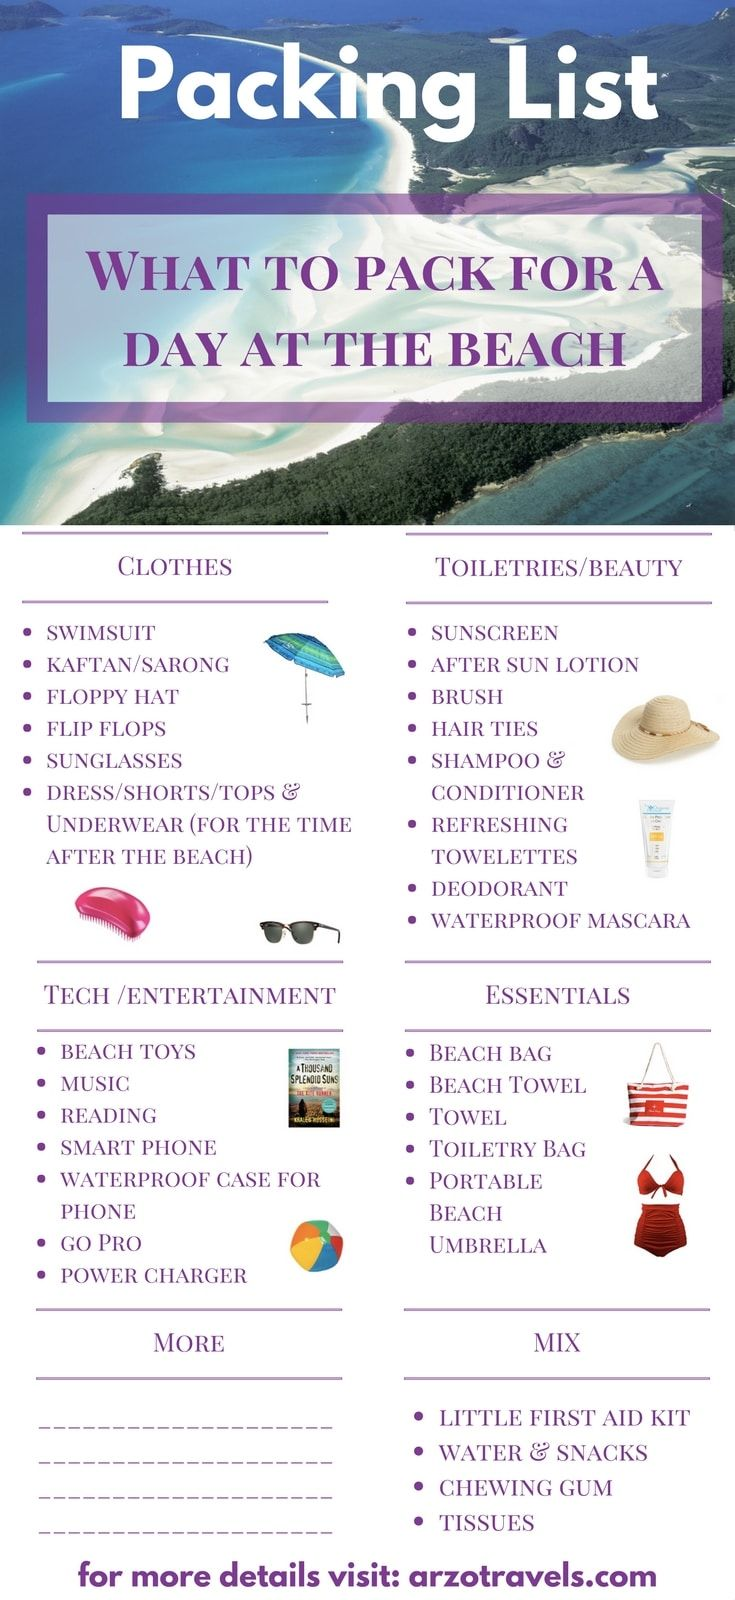 What to Pack for a Day at the Beach - so you have a perfect day at the beach. Travel tips for summer holidays.